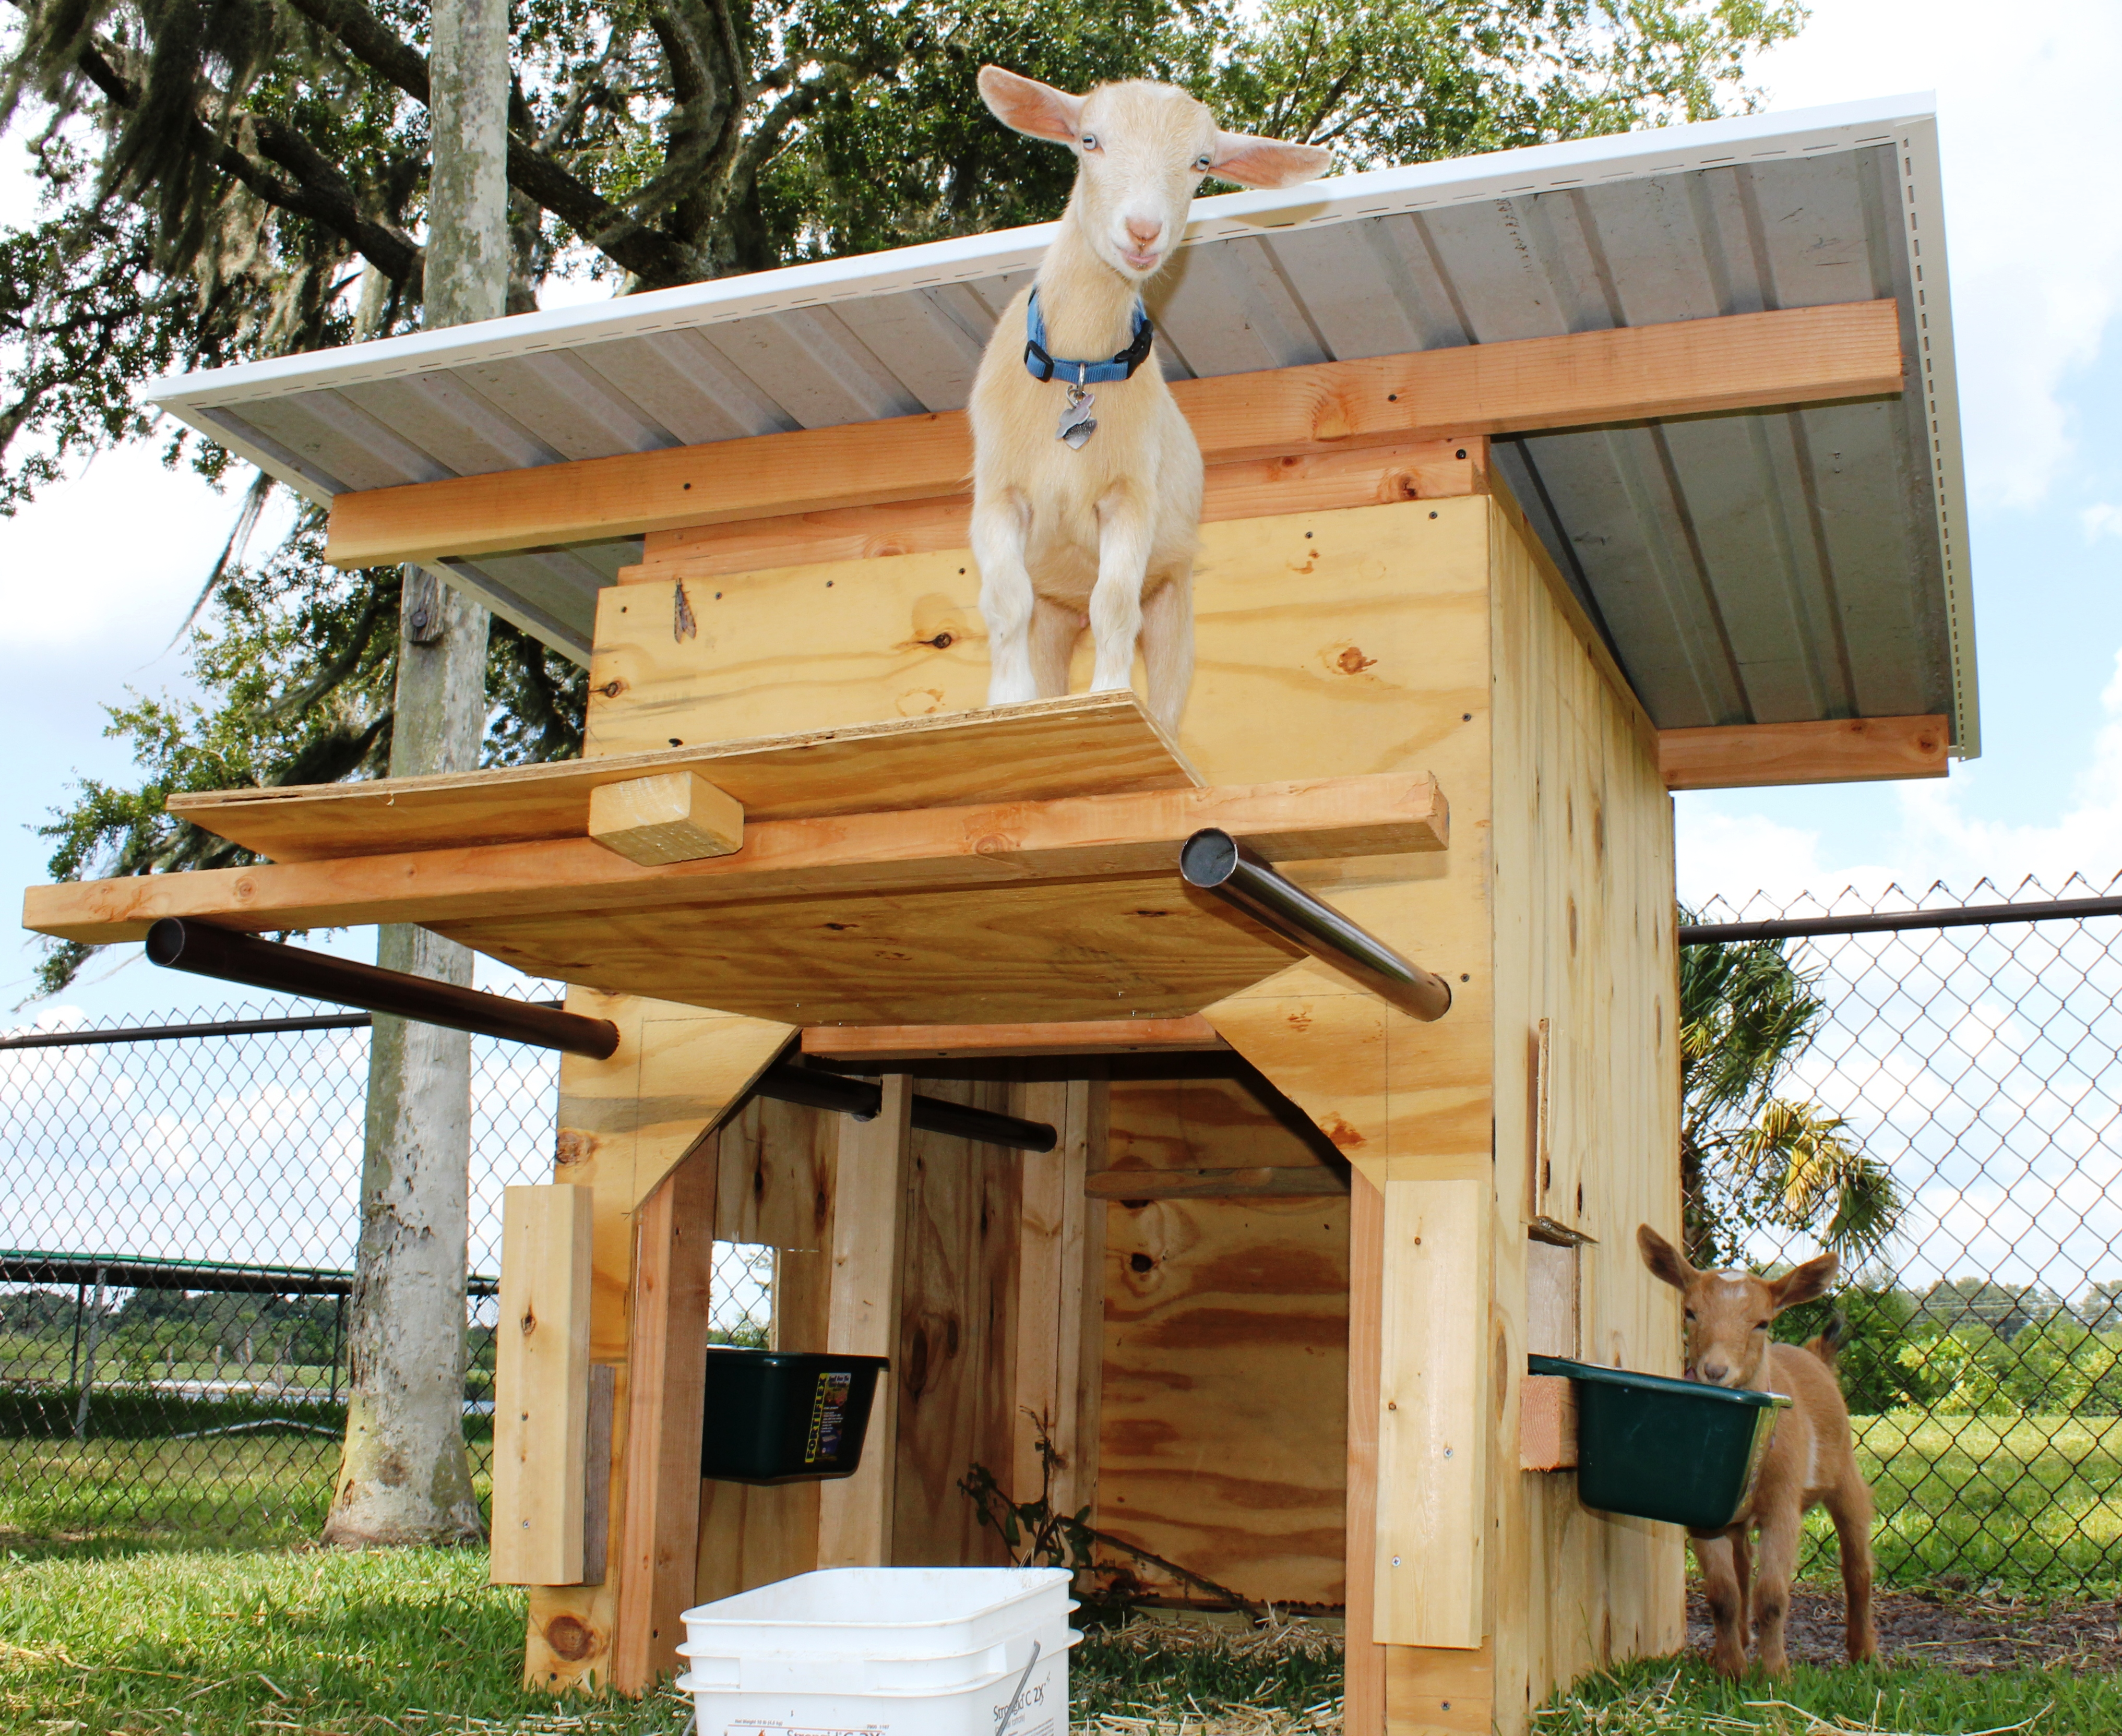 ^ 1000+ images about Goat Barn on Pinterest